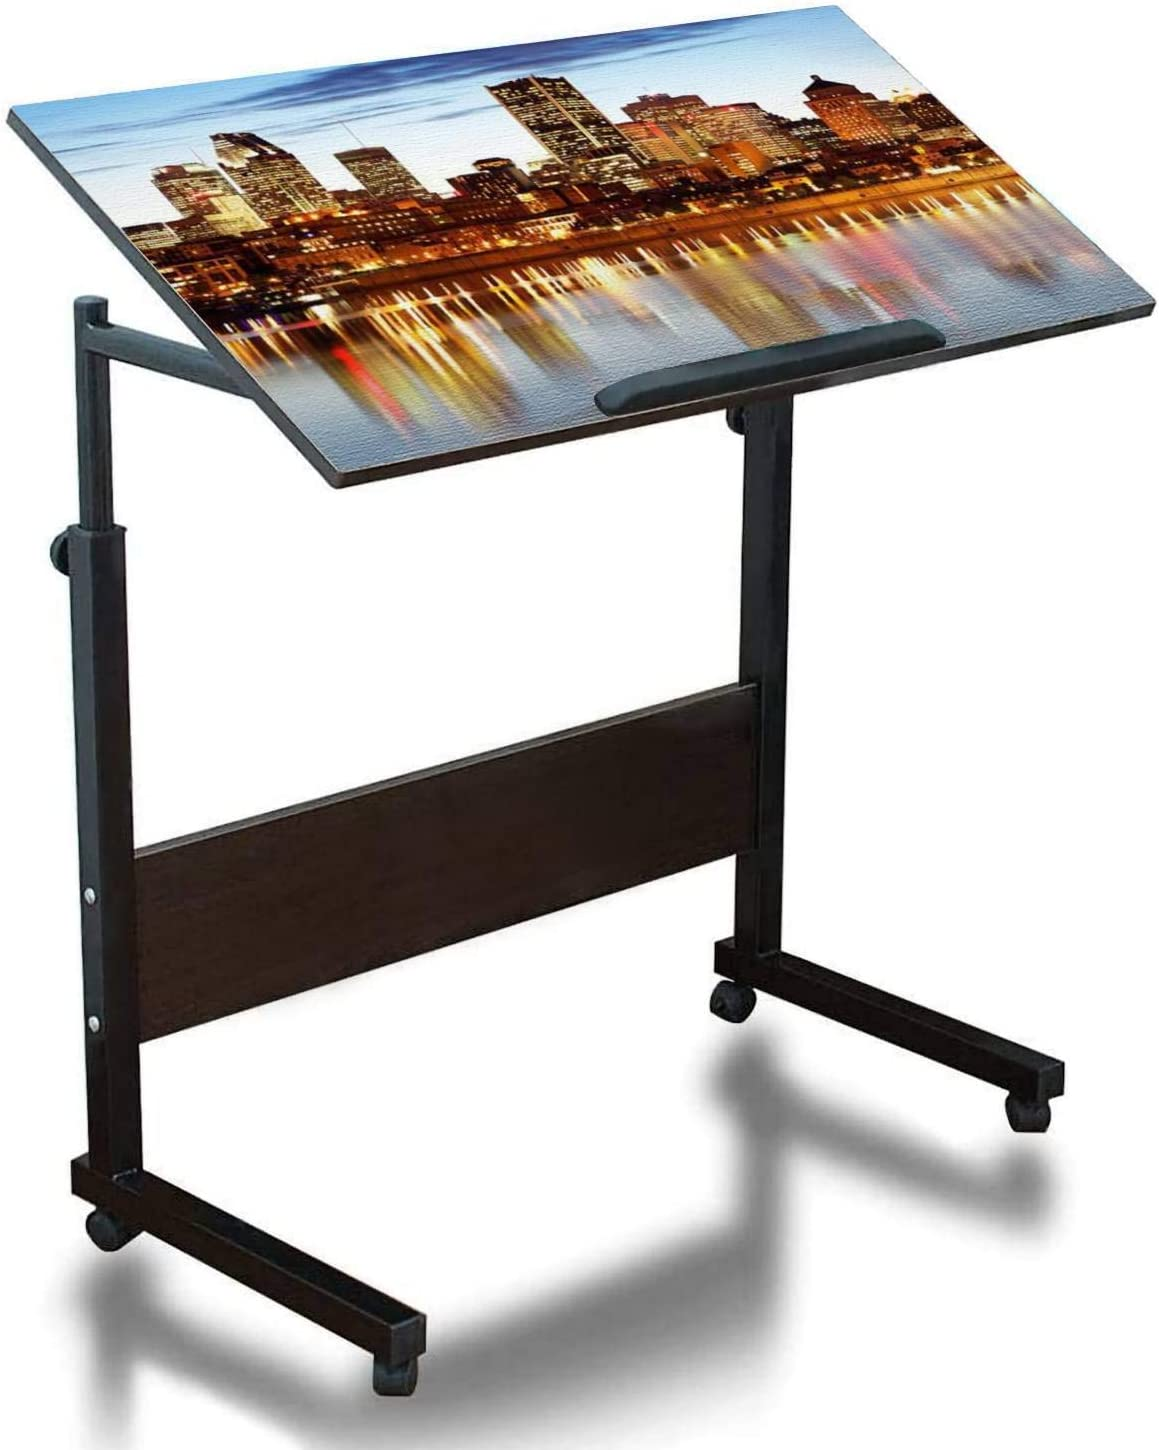 Mobile Laptop Desk Height Adjustable Table Montreal Skyline and River at Dusk XXL Small Rolling Couch Desk Laptop Tray Portable Laptop Stand Desk Mini Computer Table